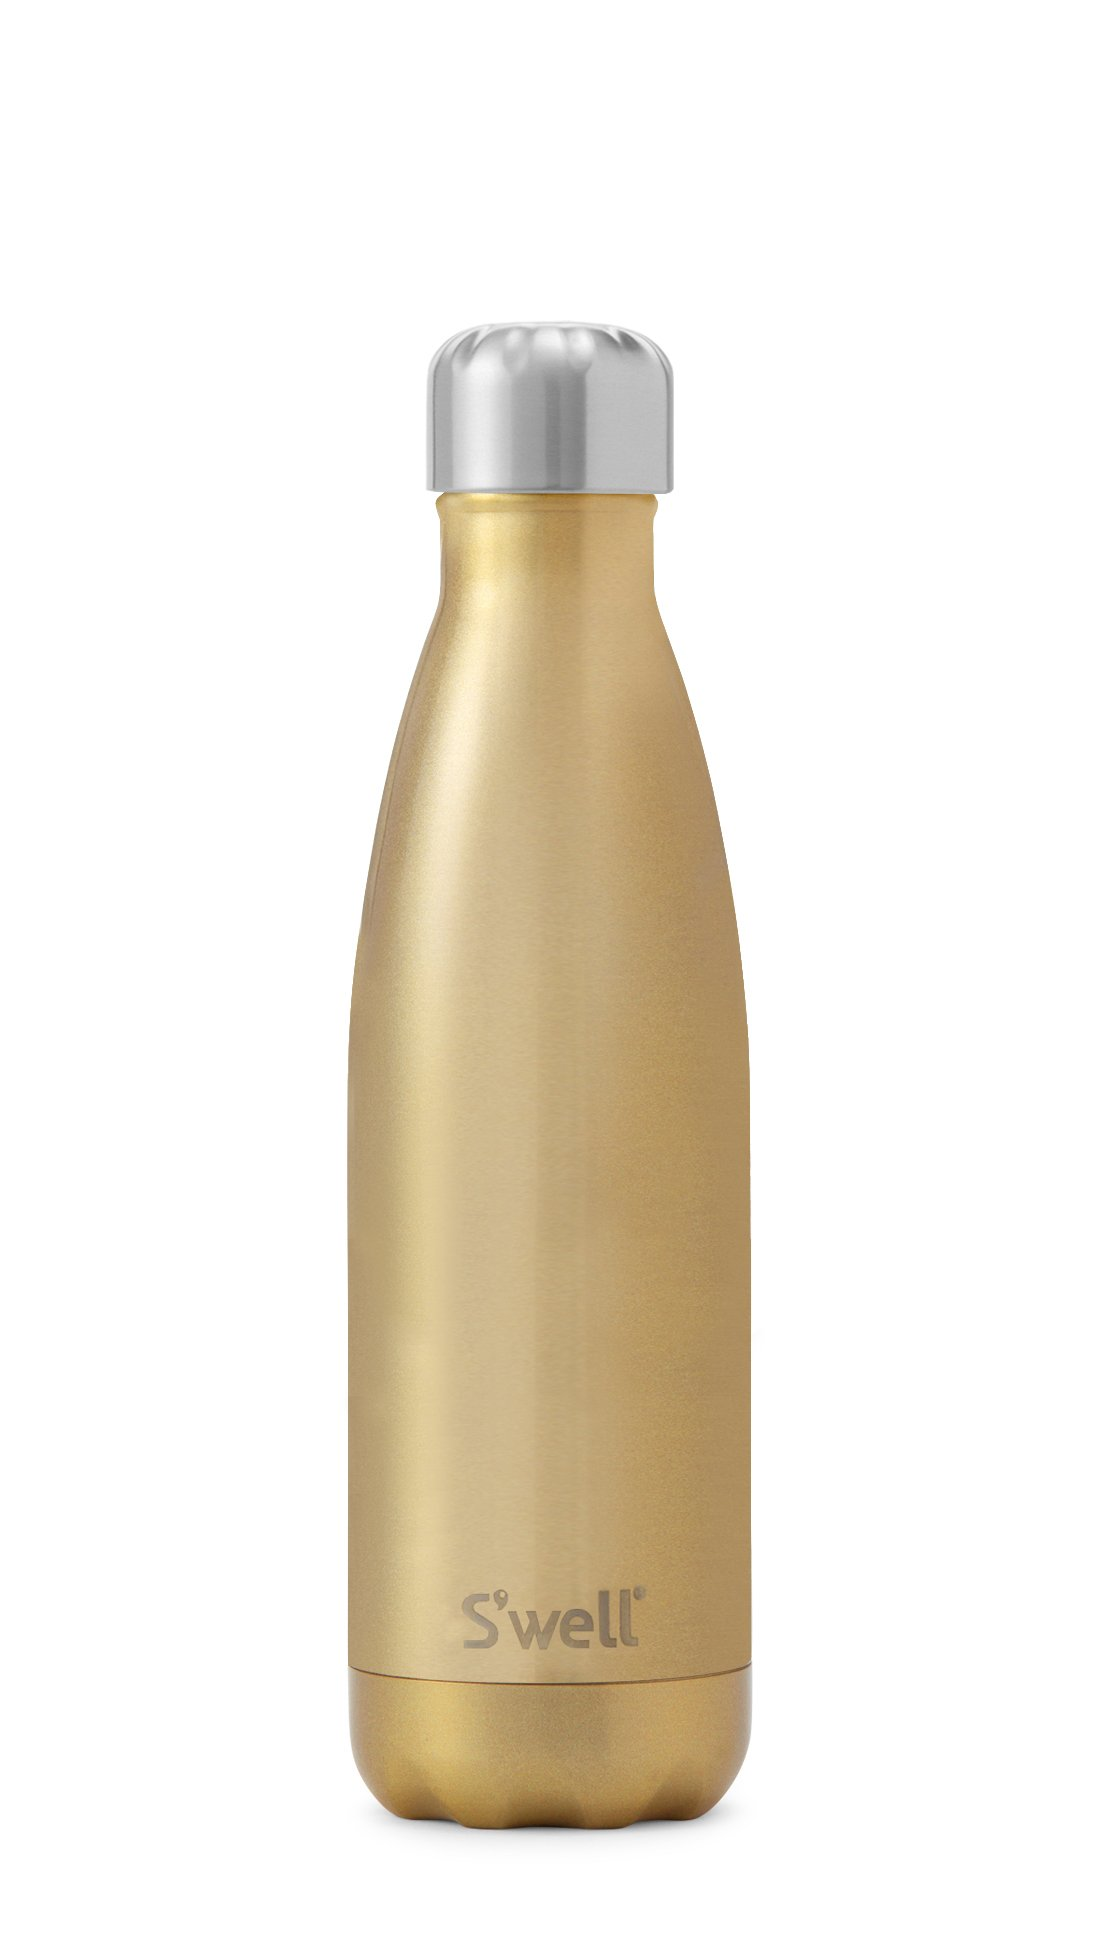 S'well Vacuum Insulated Stainless Steel Water Bottle, 17 oz, Sparkling Champagne